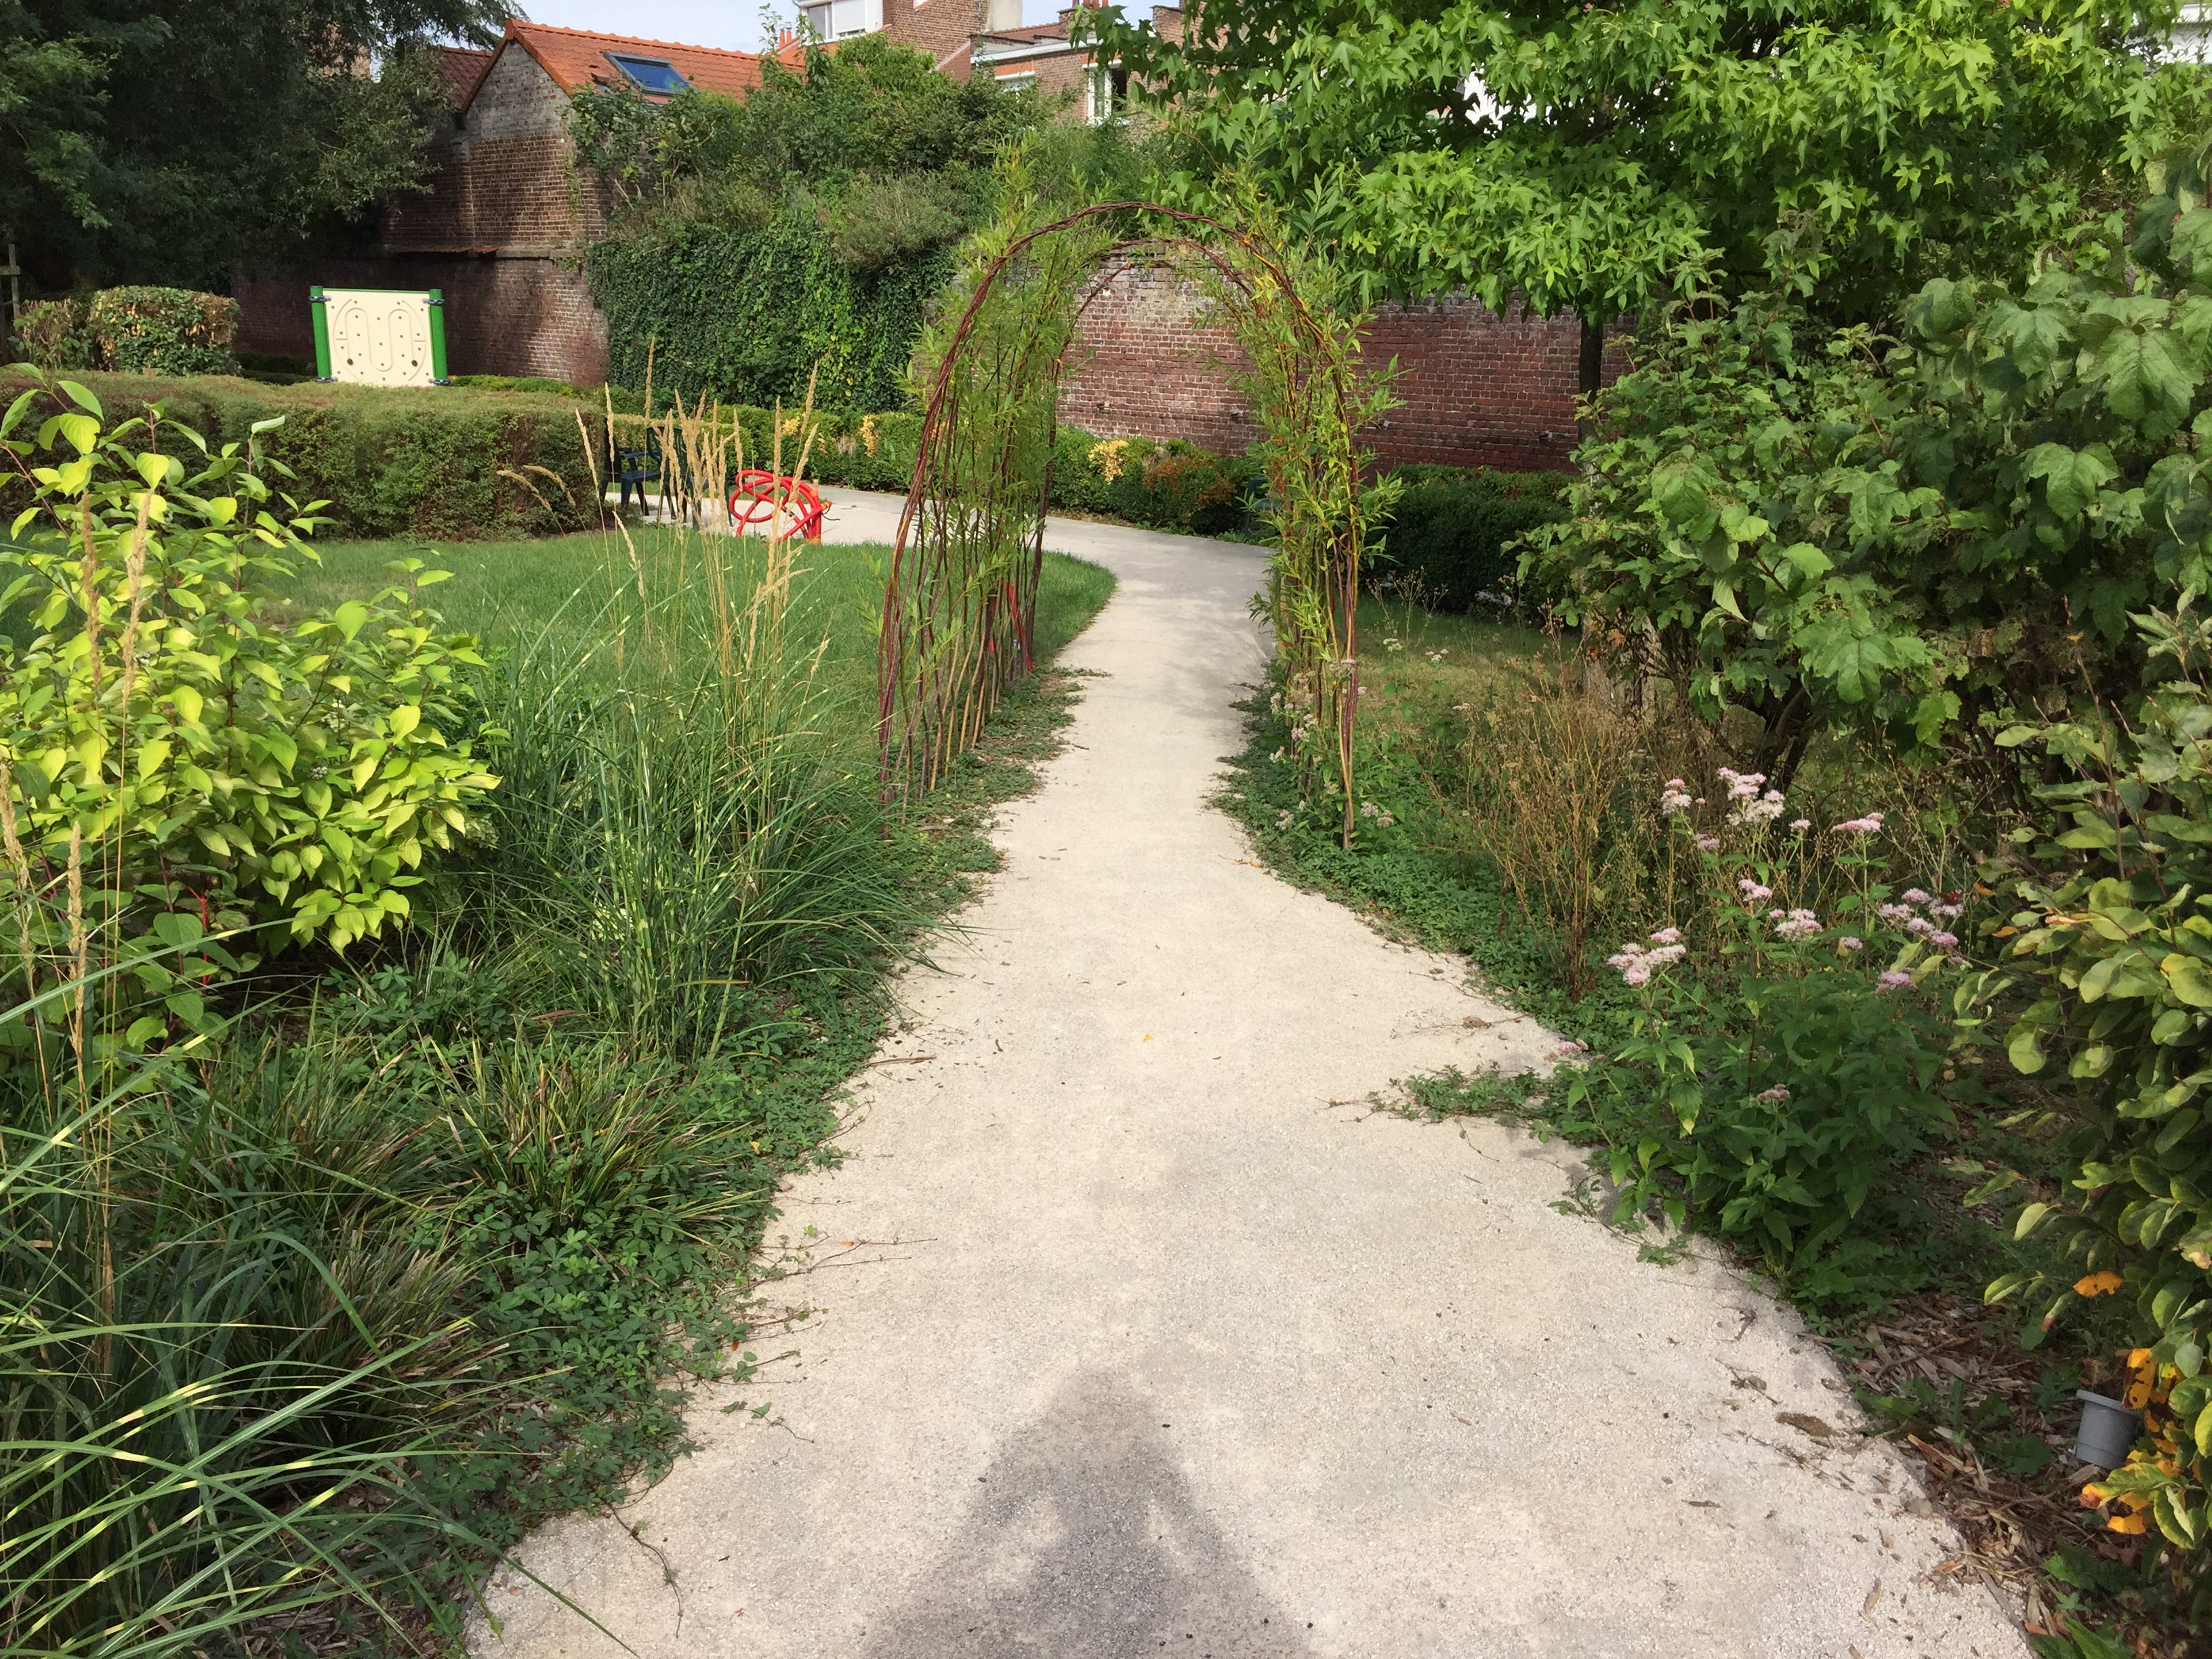 Ehpad Le Jardin Therapeutique Comme Remede